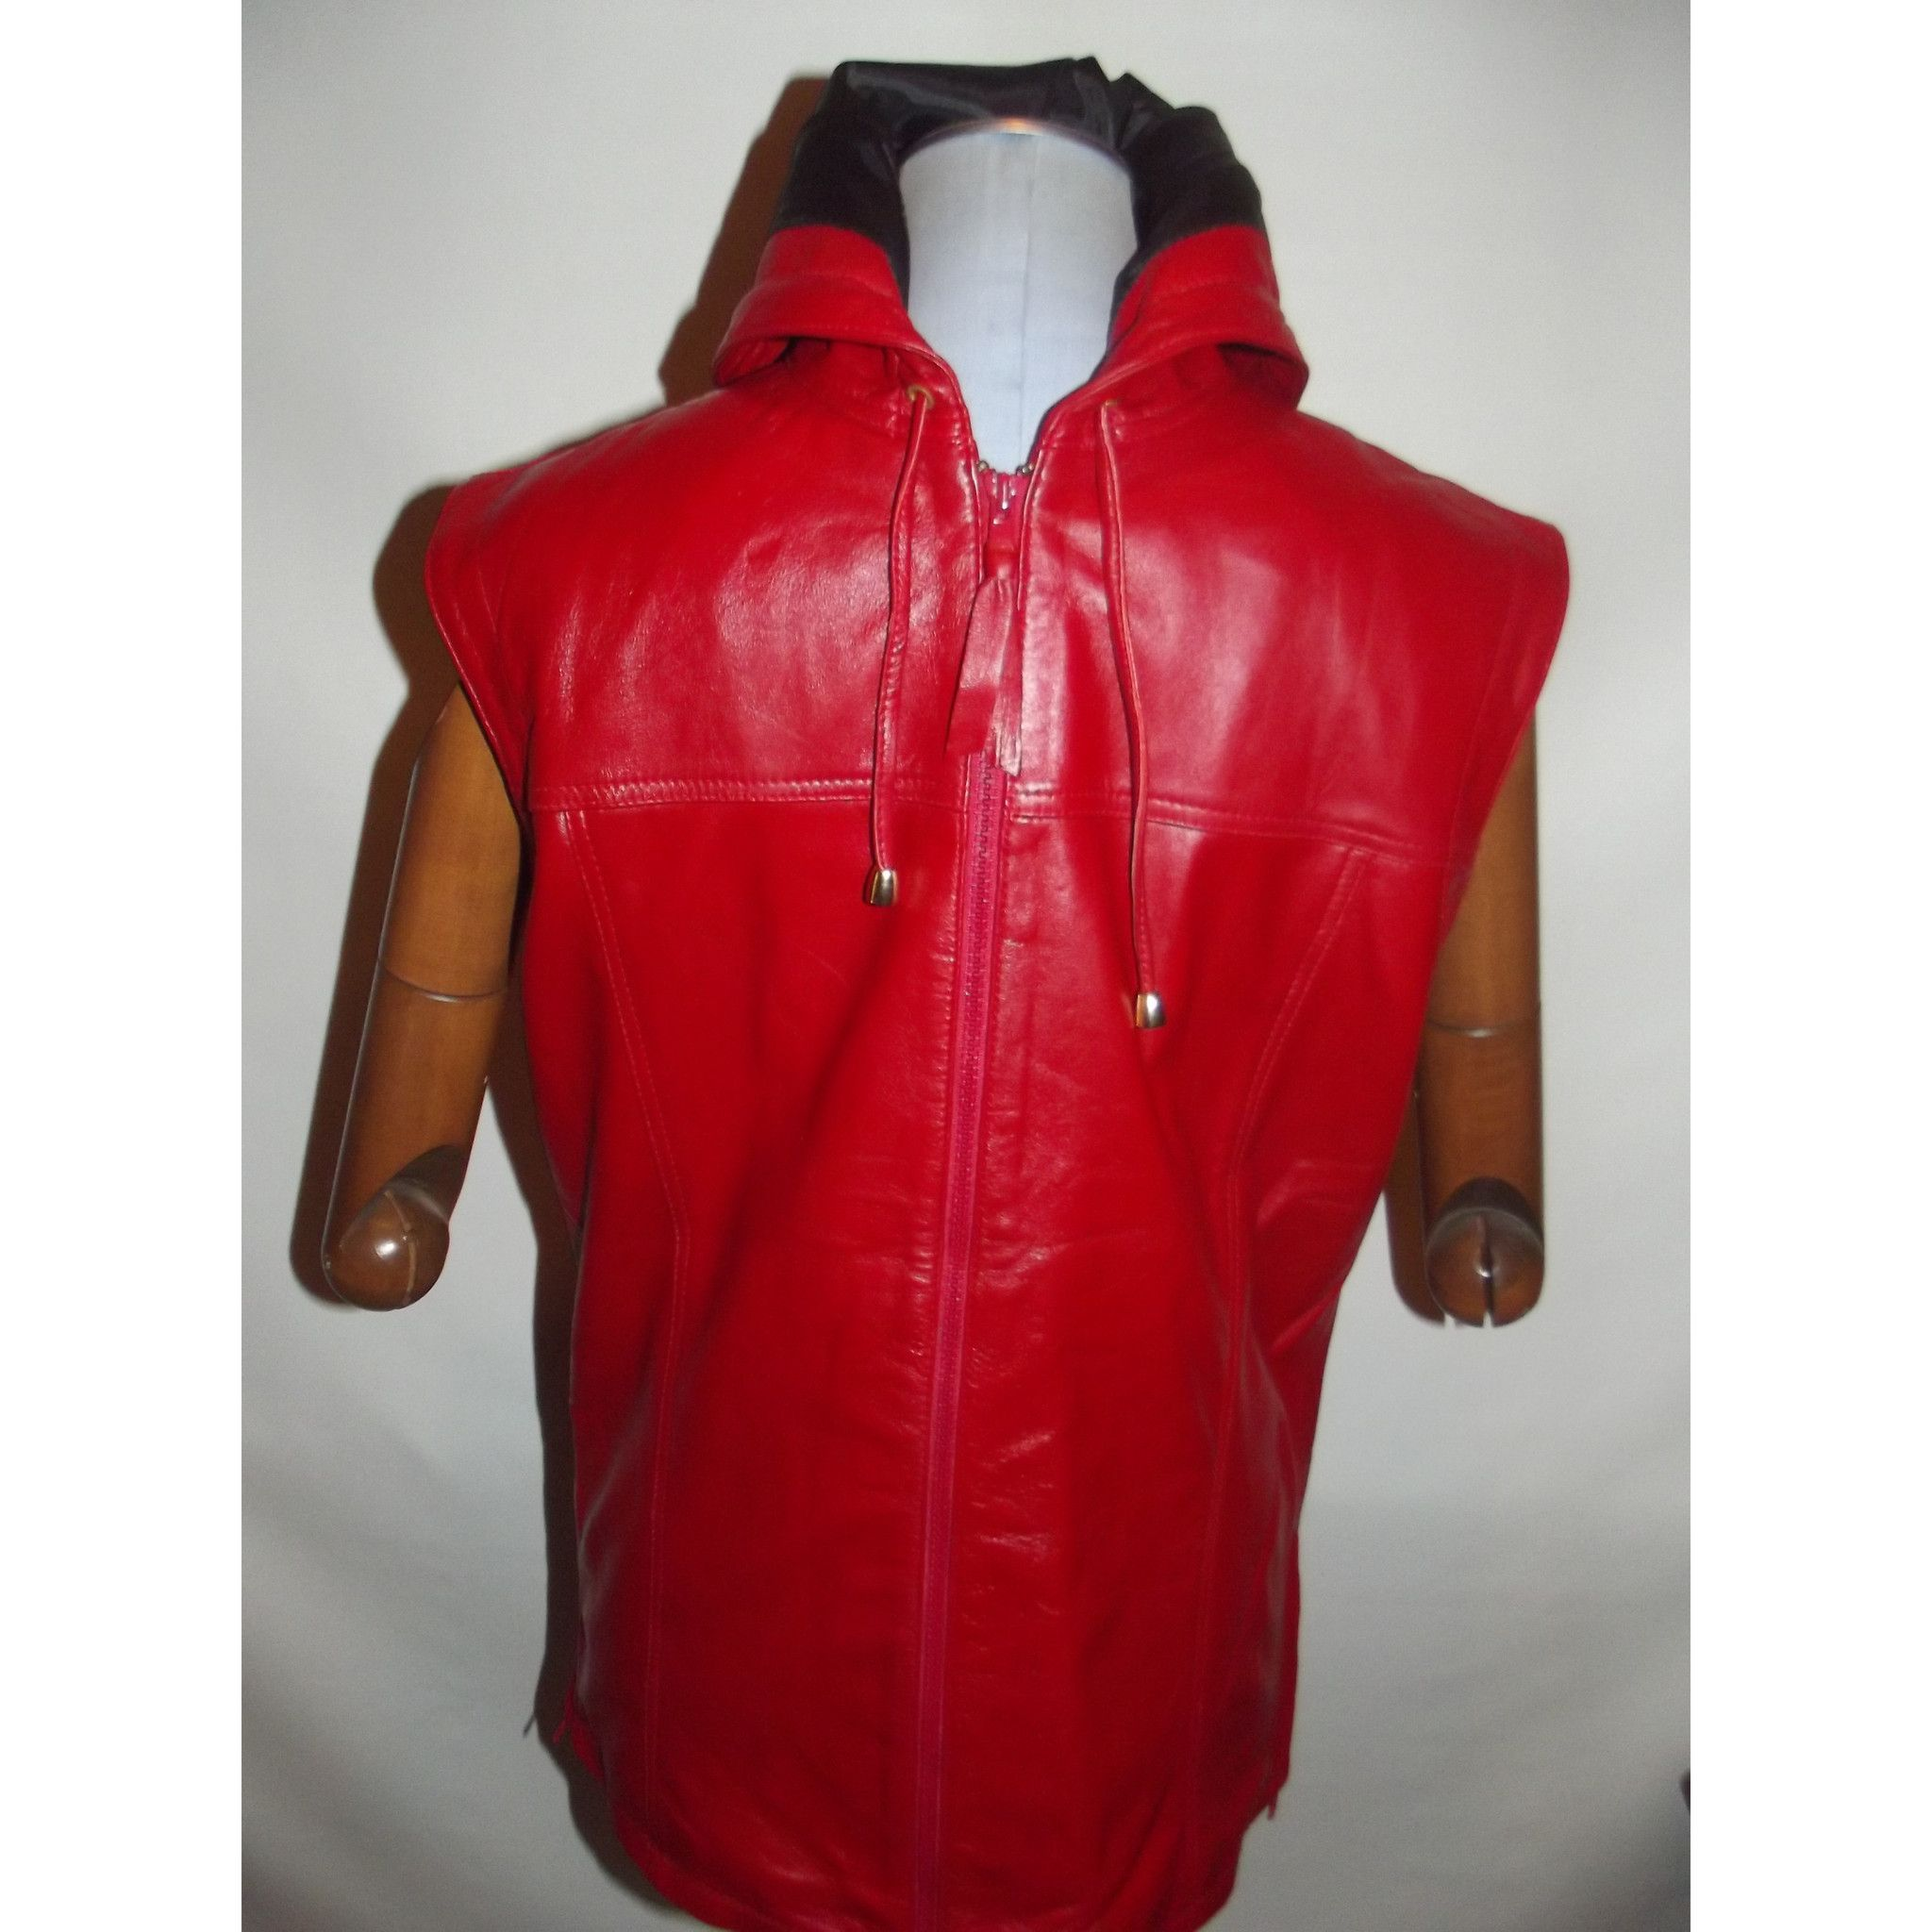 Mens Leather Jacket Red Sleeveless Hooded Hoodie Zip up